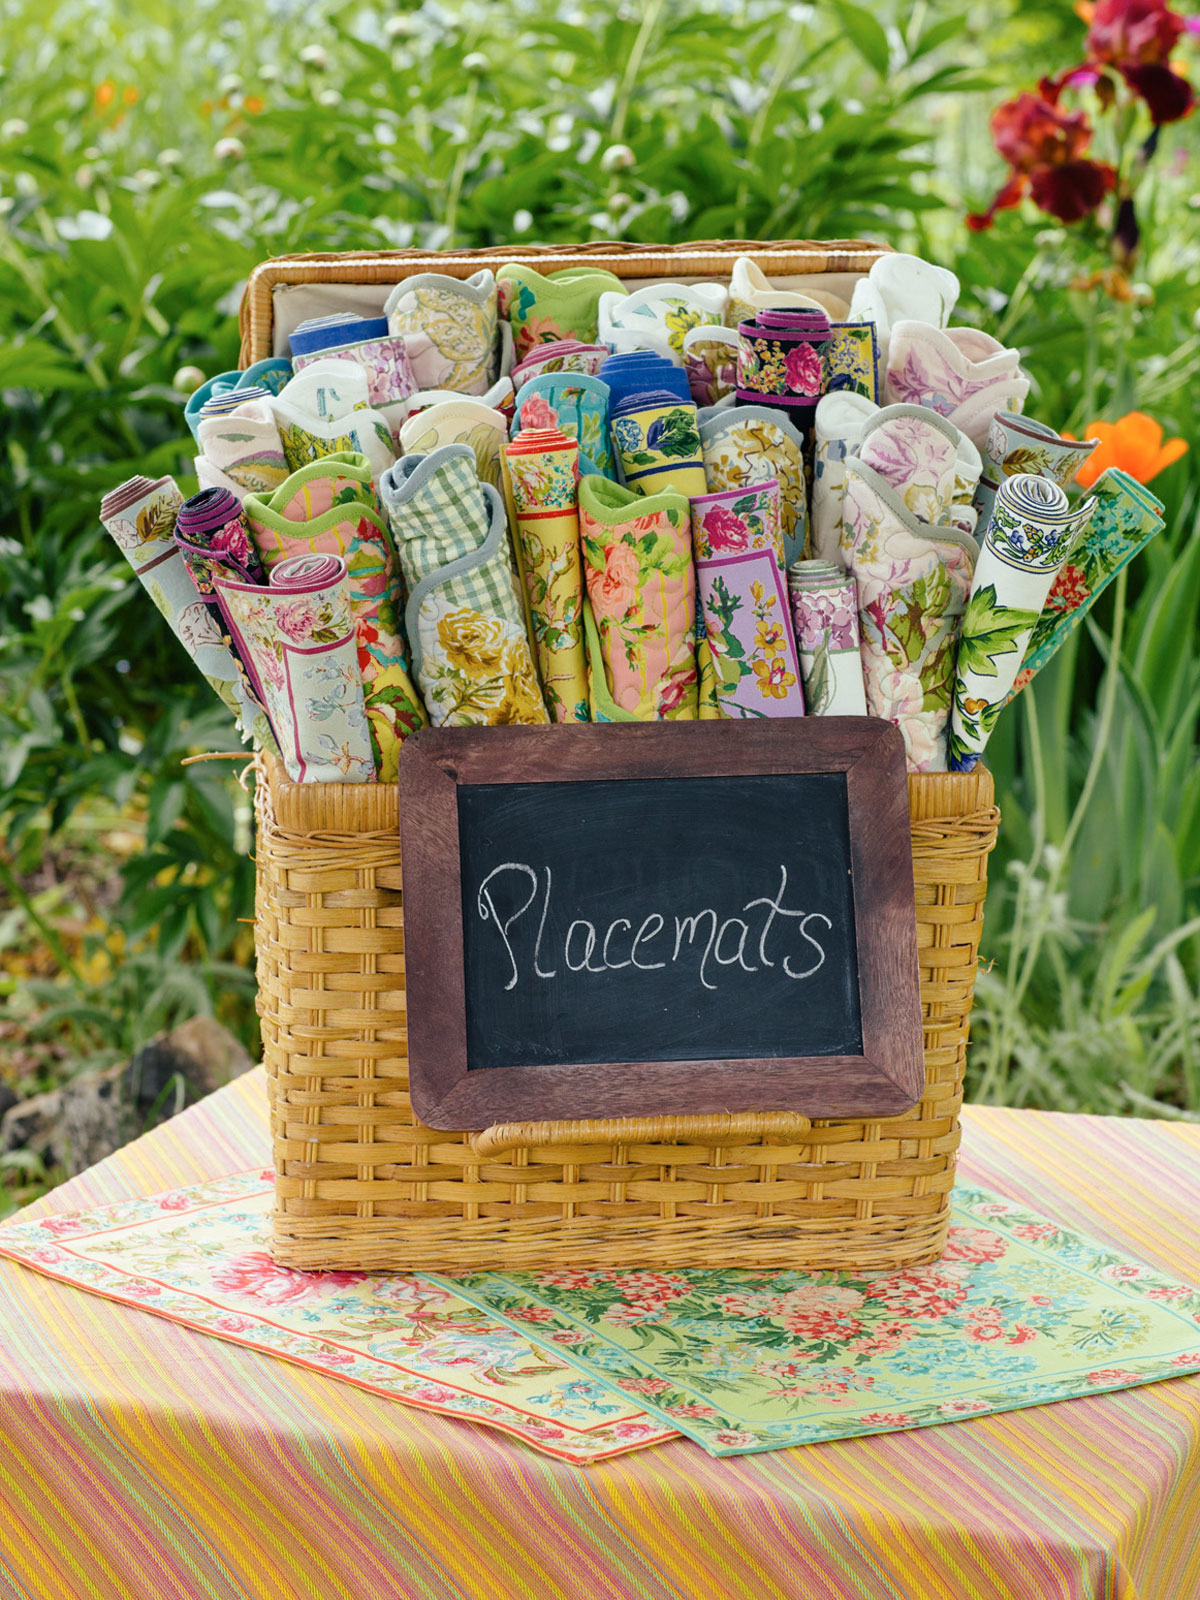 Zinnia garden placemat quilted set 4 attic sale linens for Quilted kitchen set